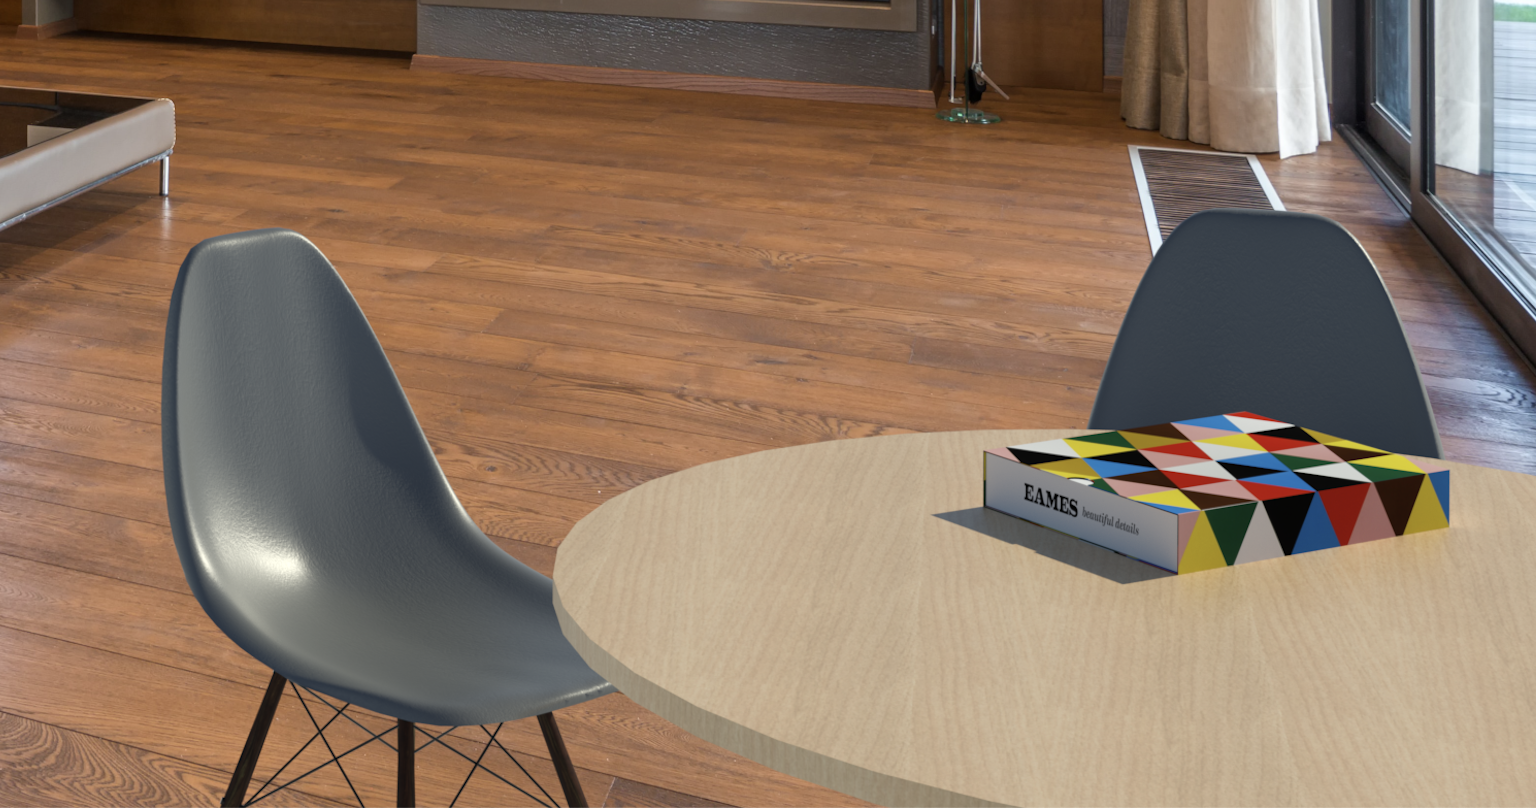 Rendering of the Eames Shell Chair Revit family in a home setting.